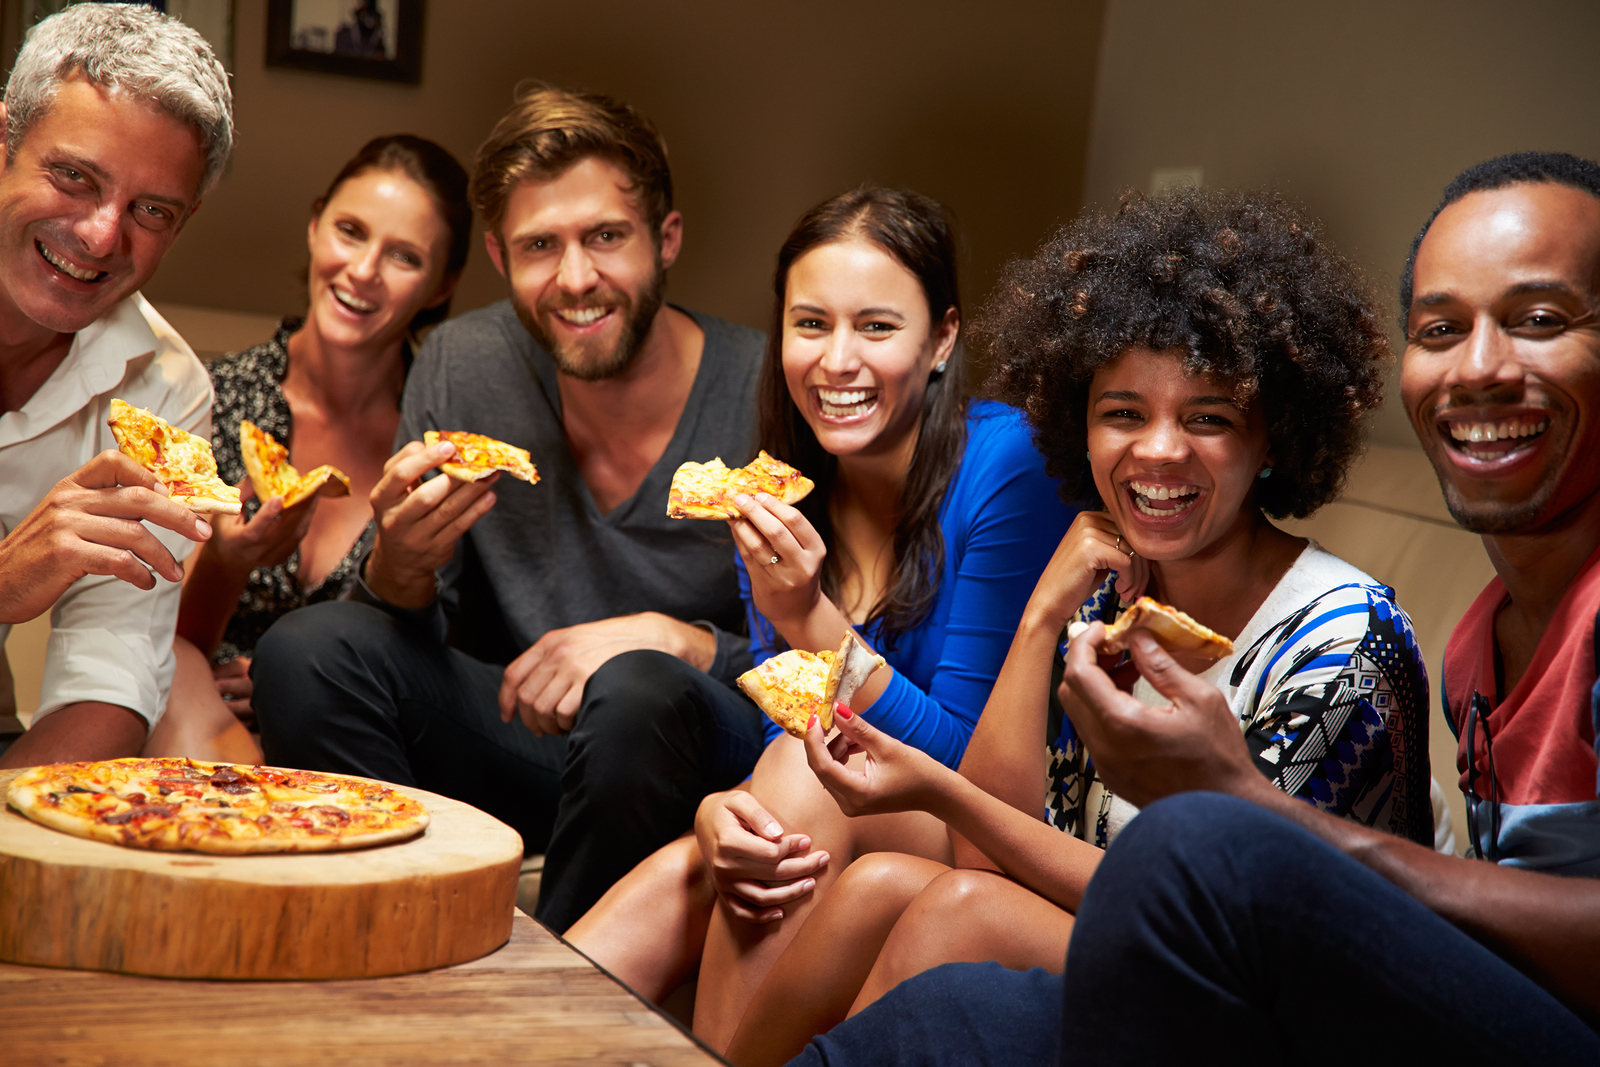 bigstock-Group-of-adult-friends-eating--95387333